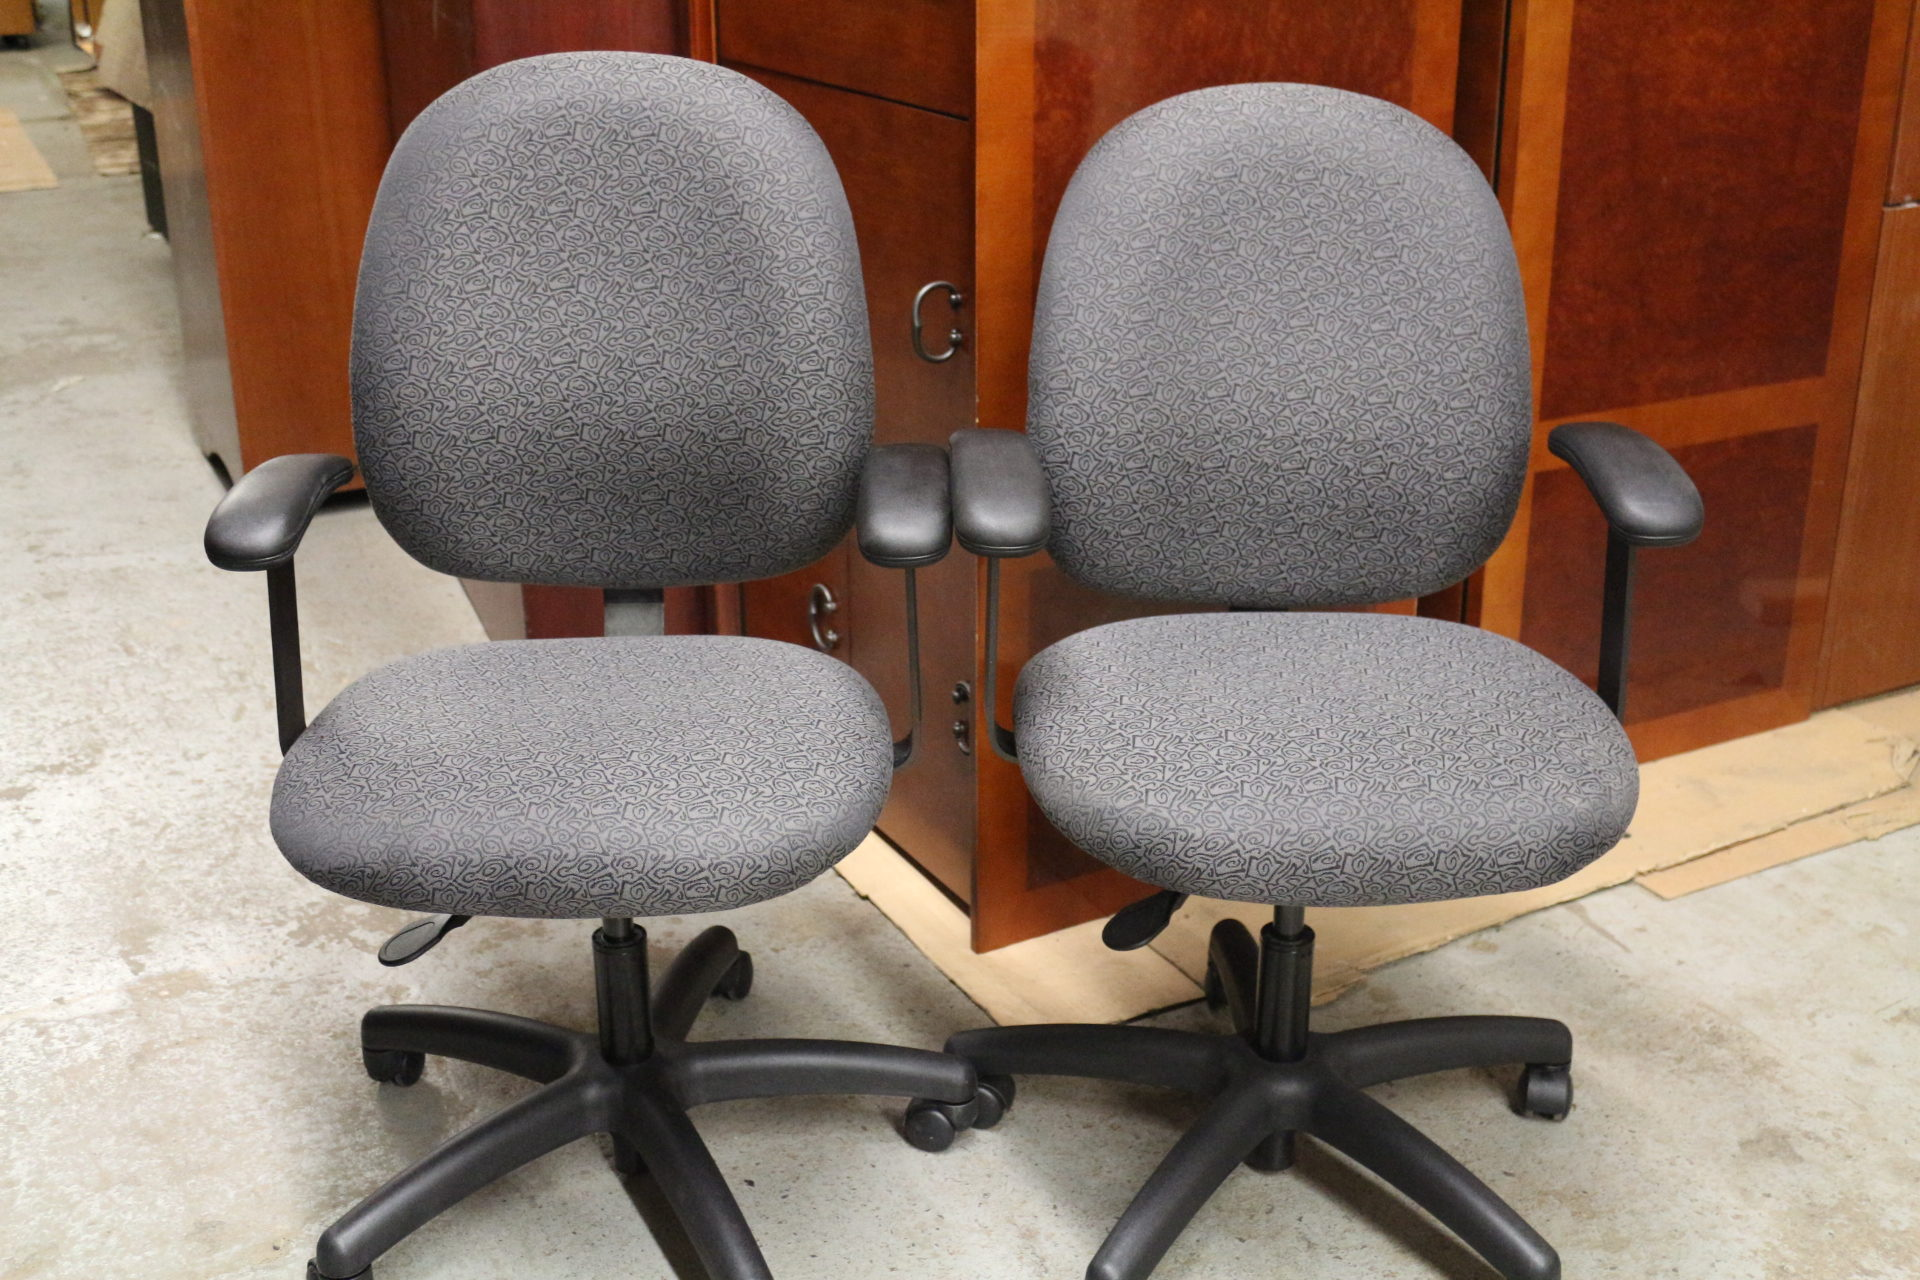 Stylex Black and Gray Task Chair